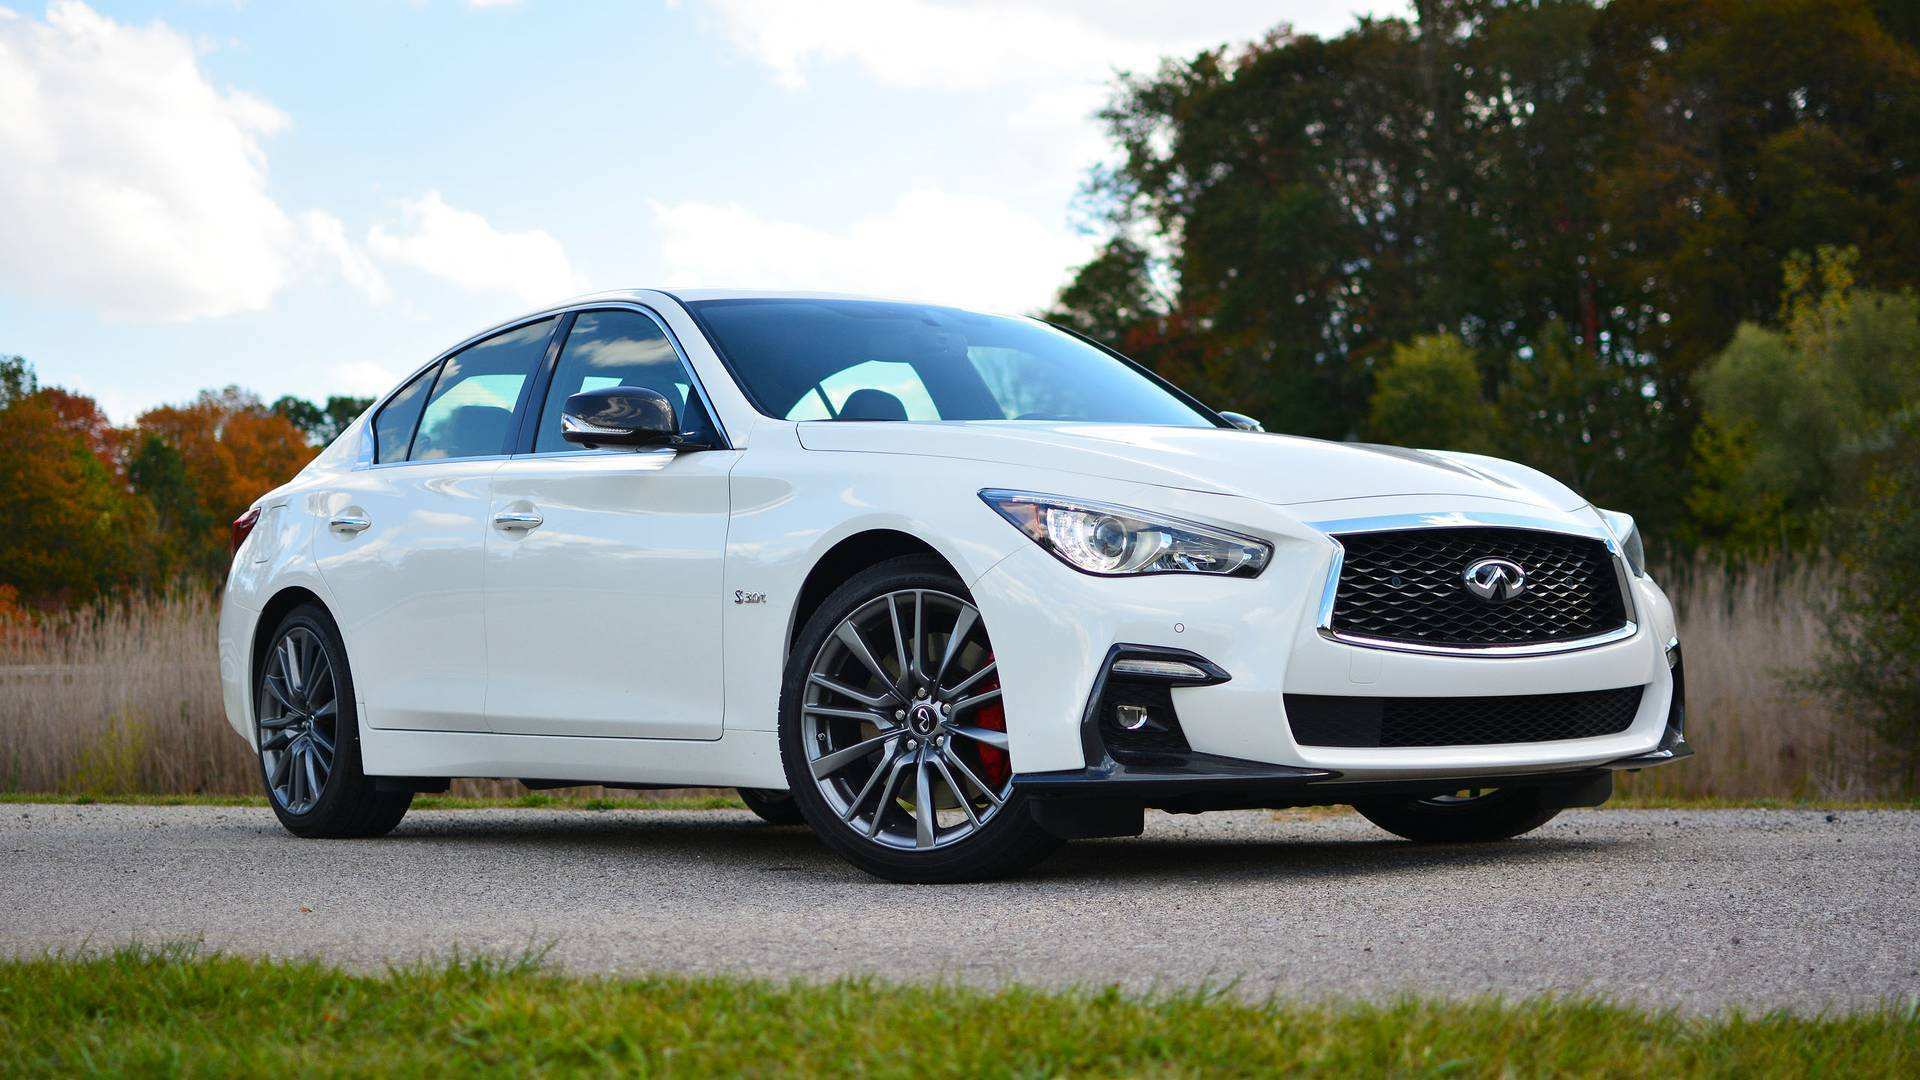 51 Great 2020 Infiniti Red Sport Photos with 2020 Infiniti Red Sport